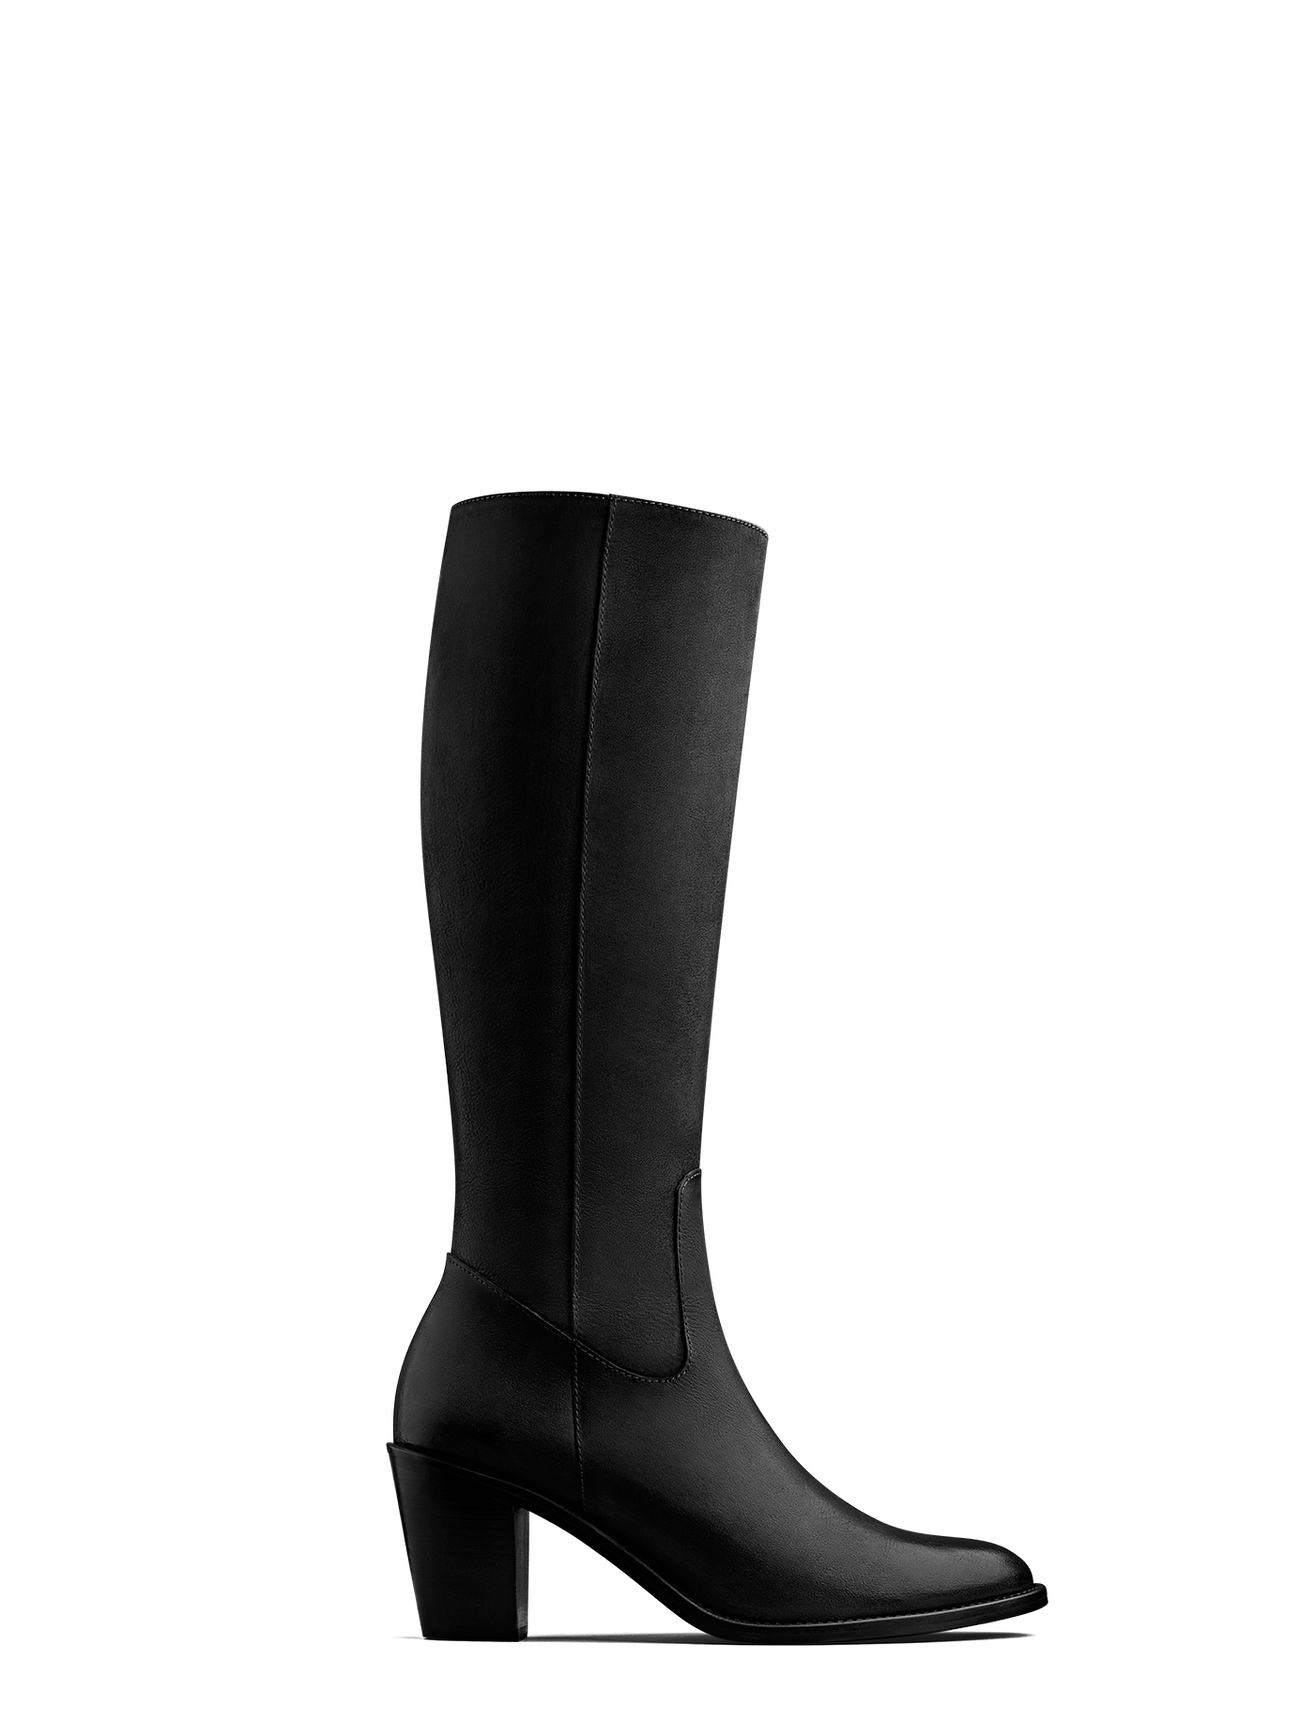 Feltham, our black nubuck leather knee high boot with a mid-height Cuban heel.